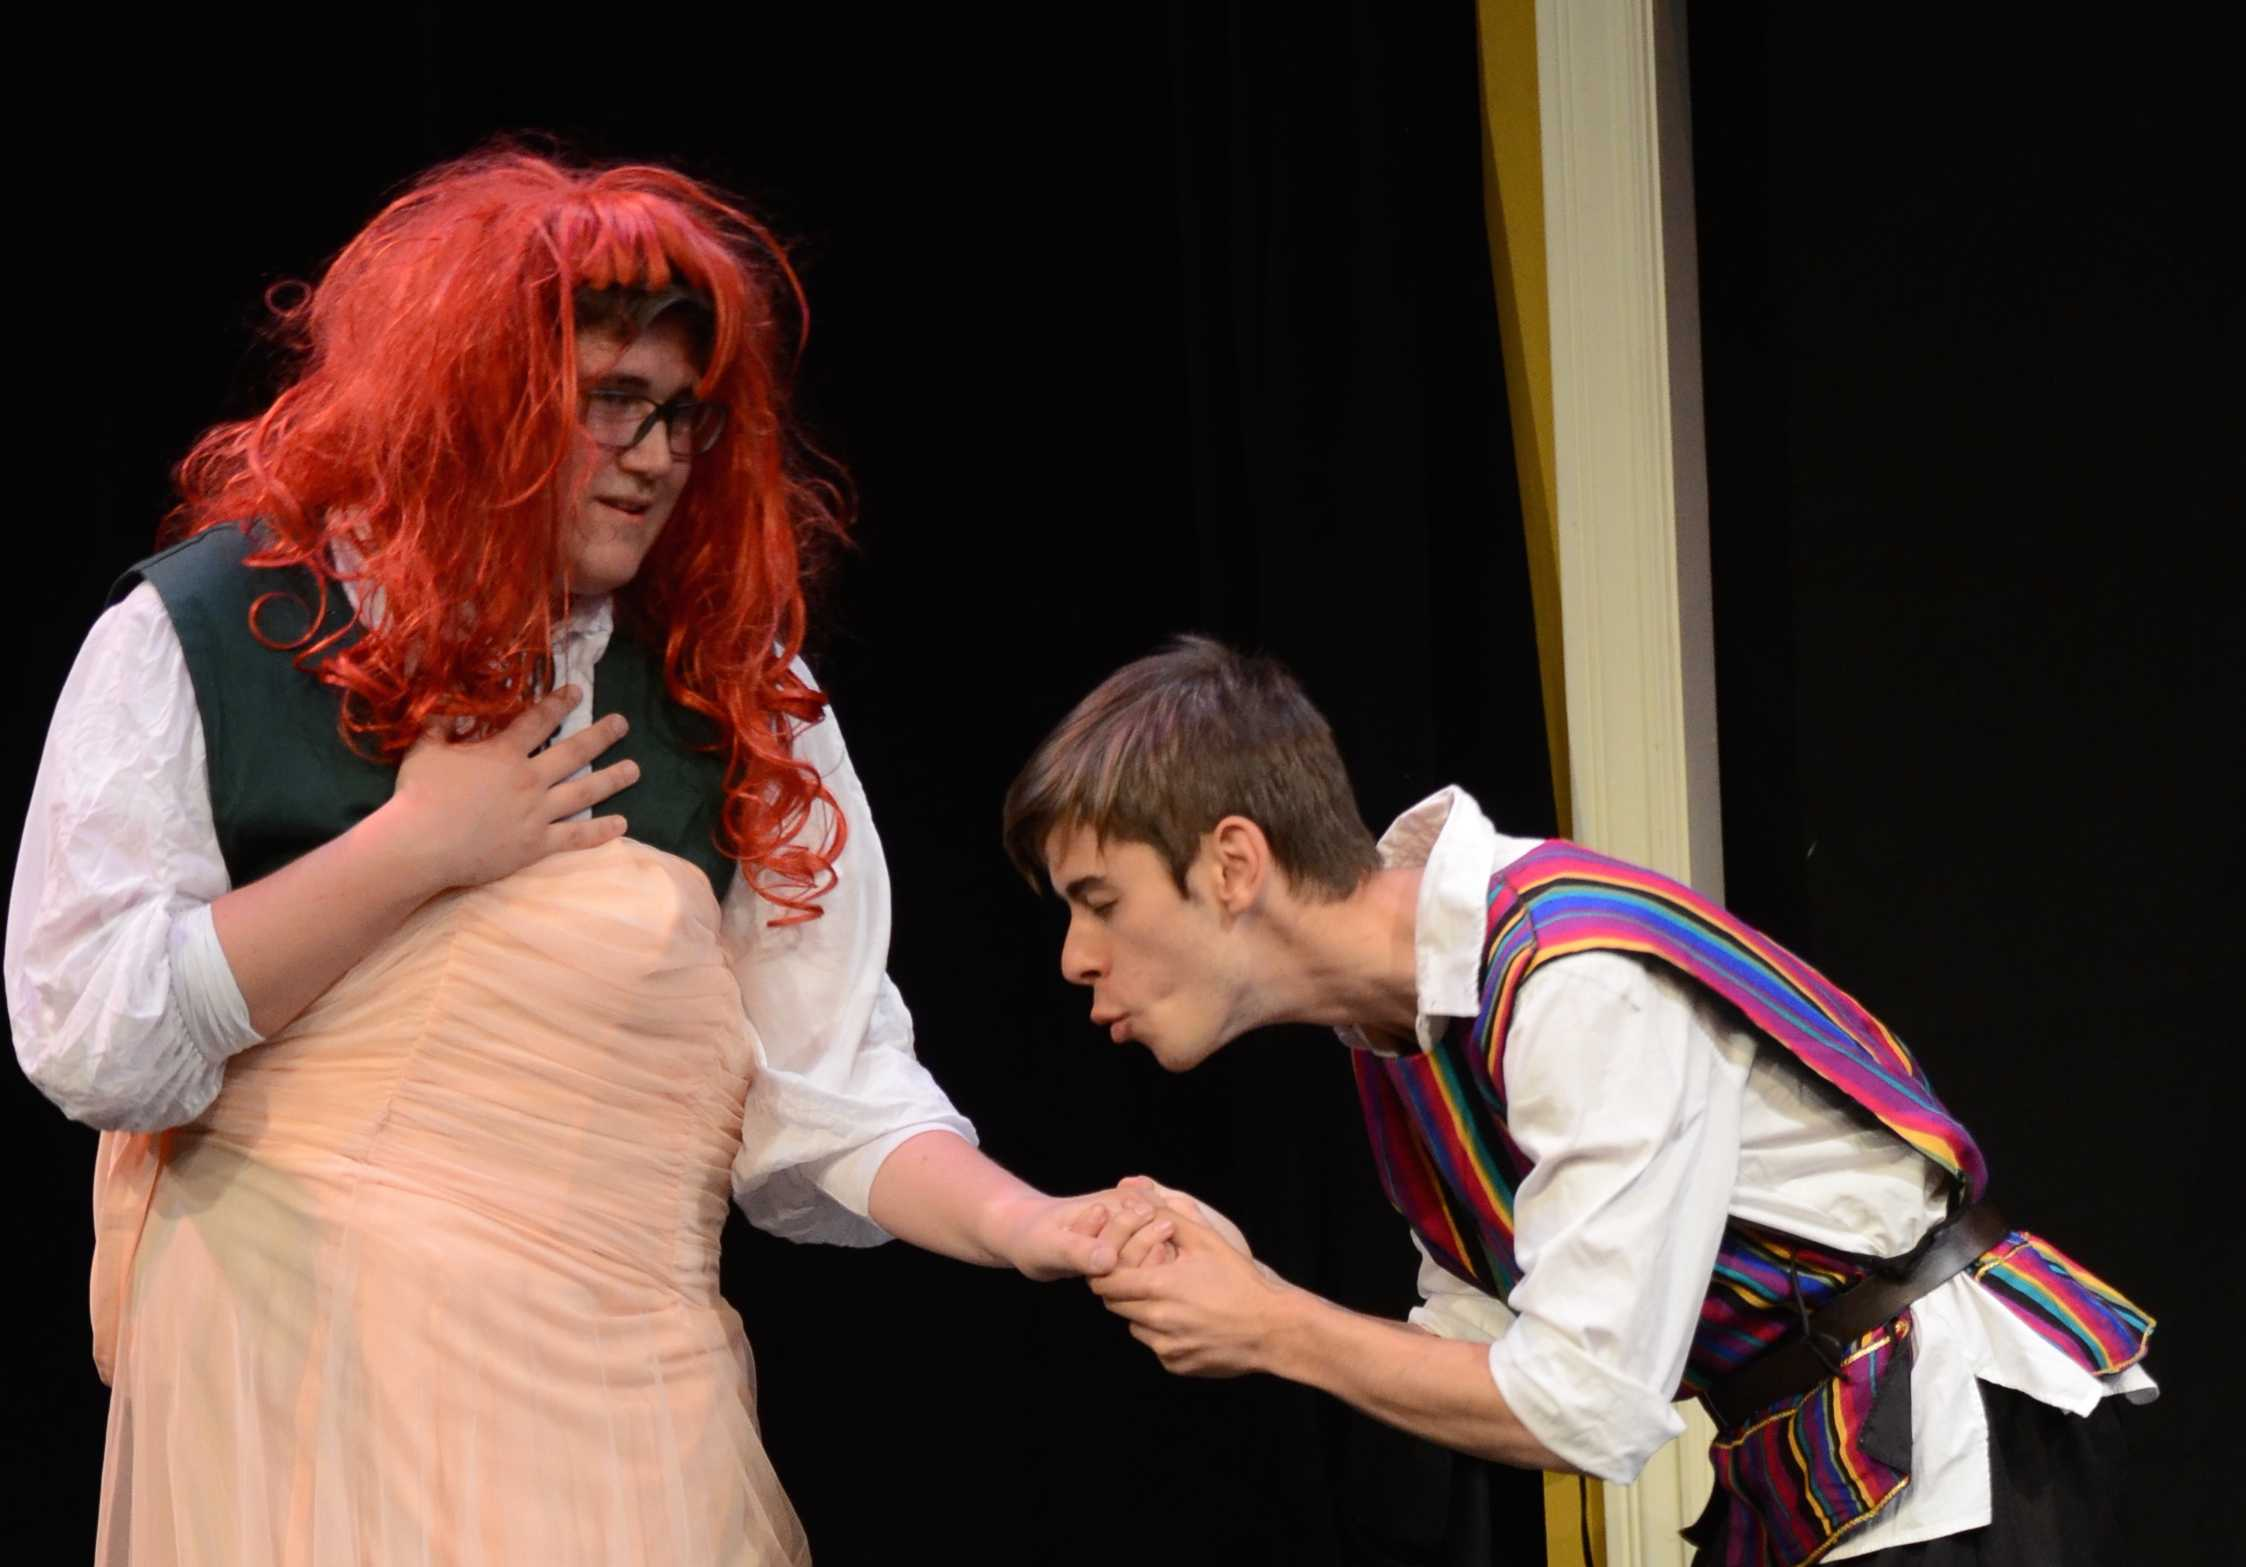 Junior Denis Yudin and senior Daniel Thompson played the parts of Romeo and Juliet respectively.